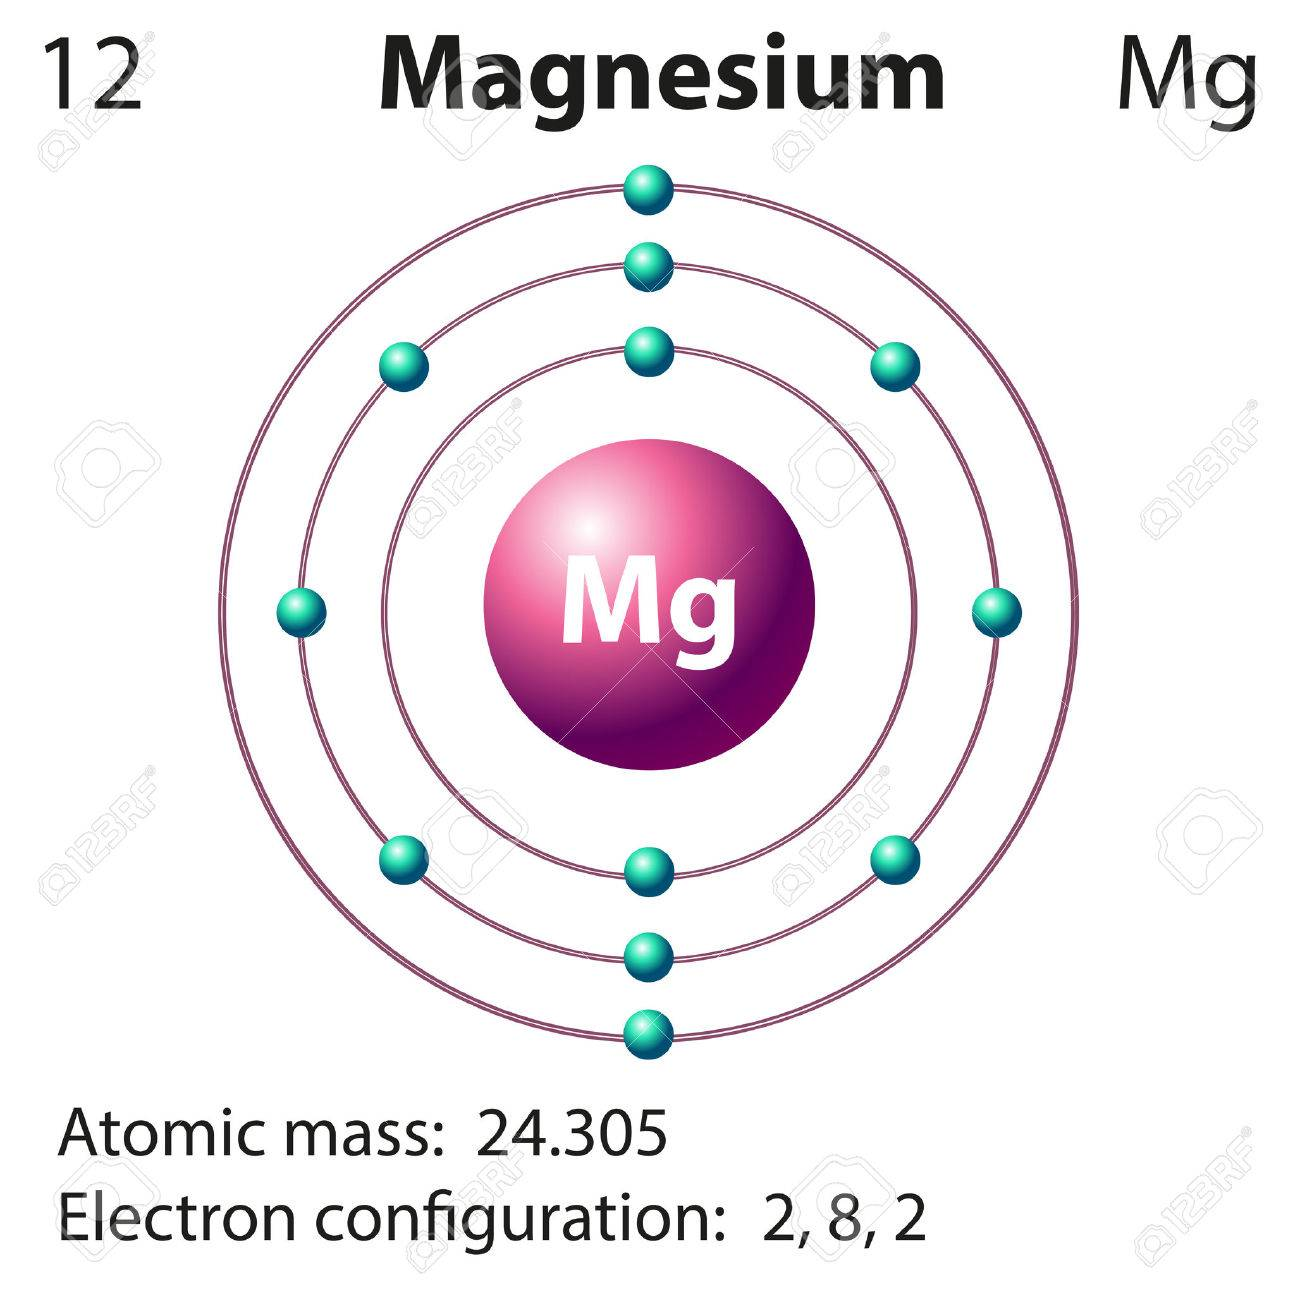 Mg element diagram wiring library diagram representation of the element magnesium illustration rh 123rf com ca element al element ccuart Gallery